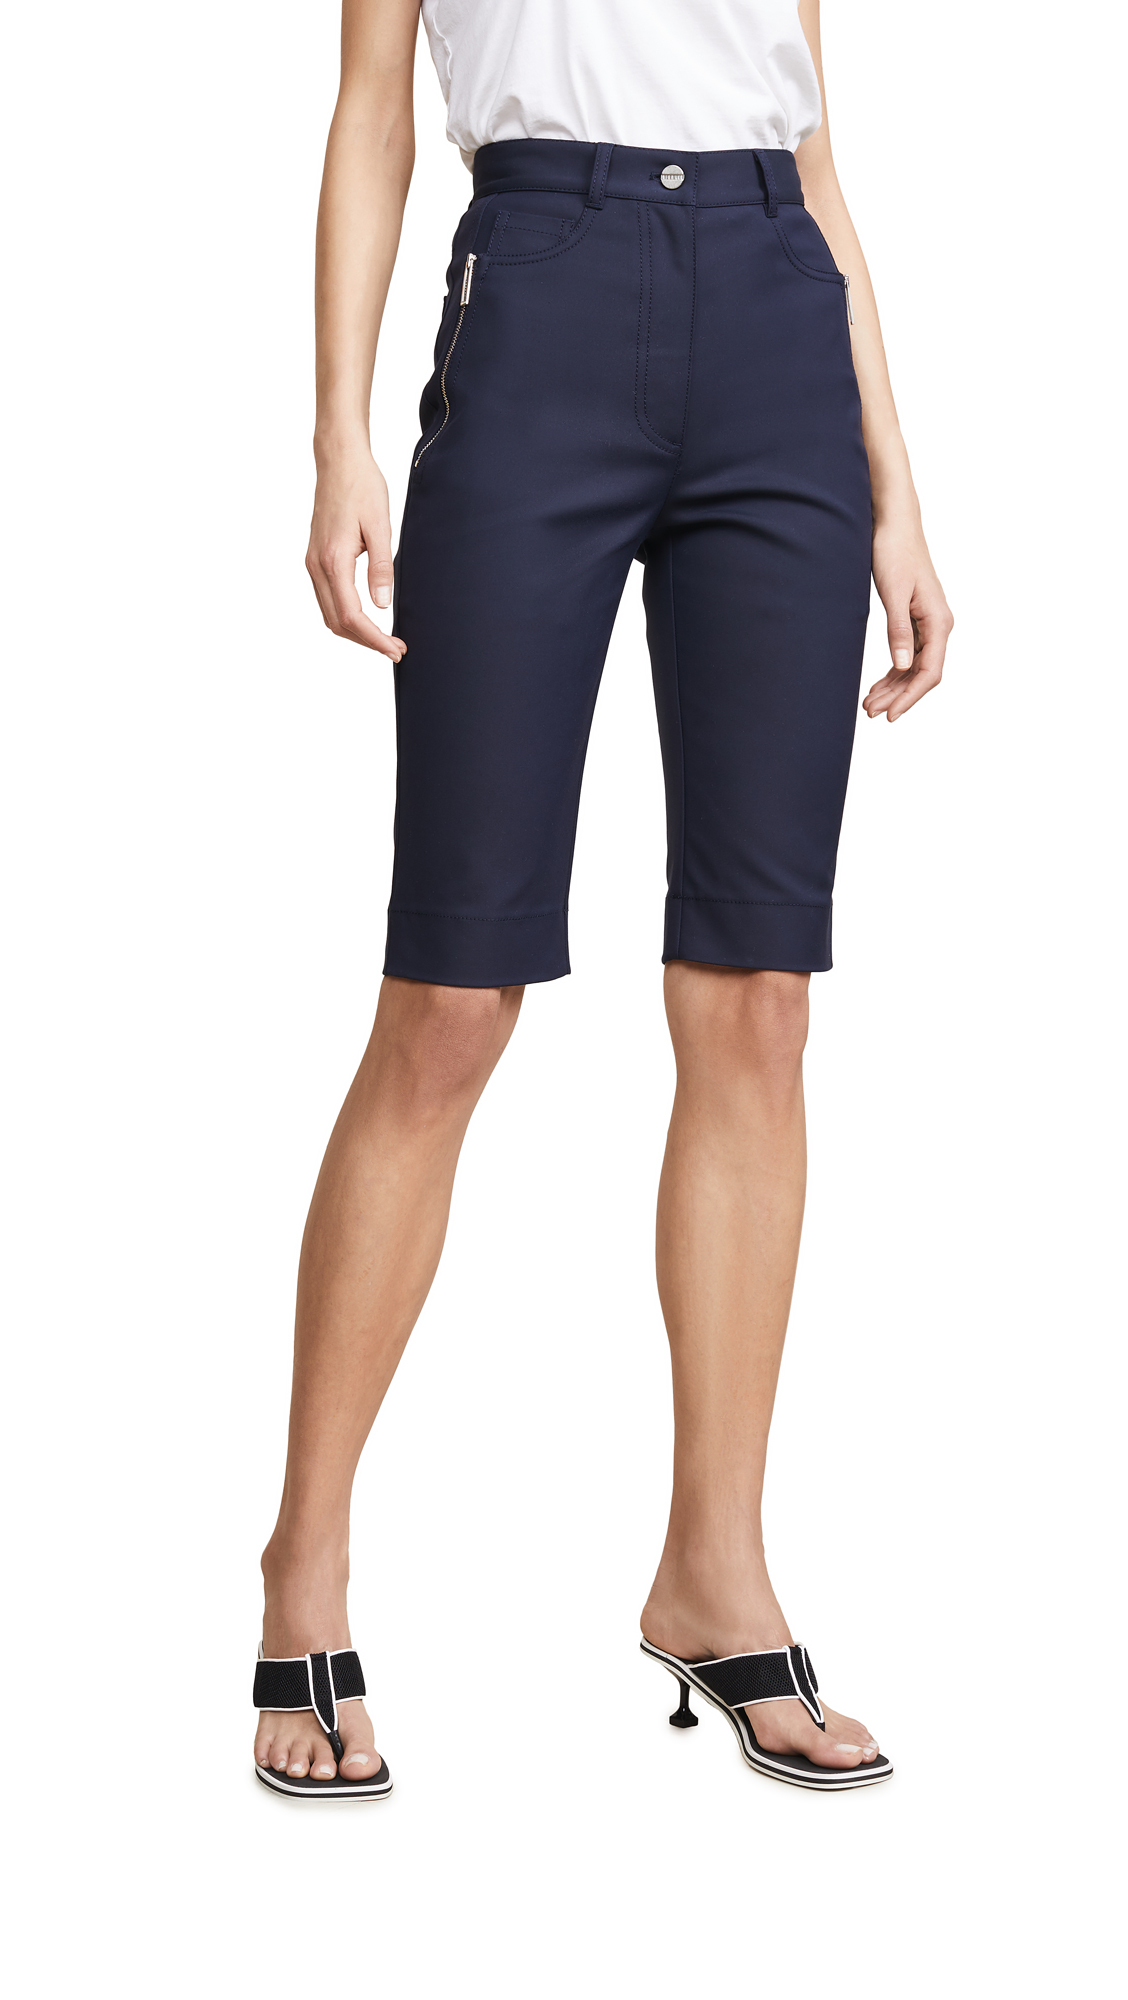 Dion Lee Highwaisted Jean Shorts - Navy